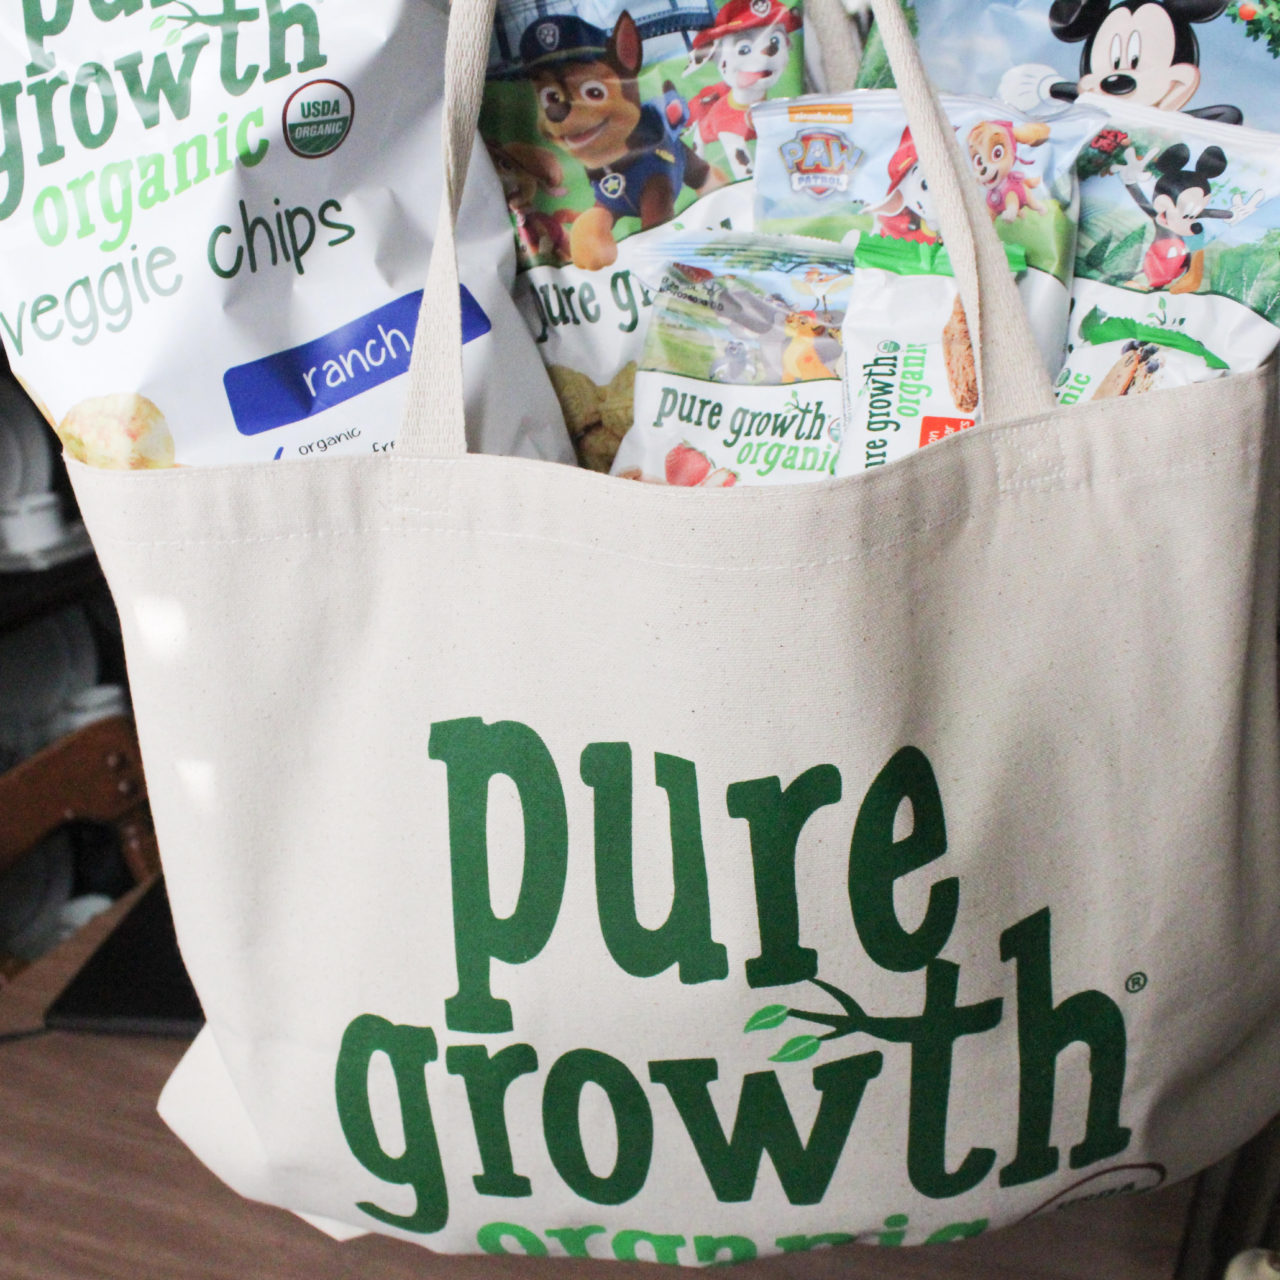 On the go with Pure Growth Organic!